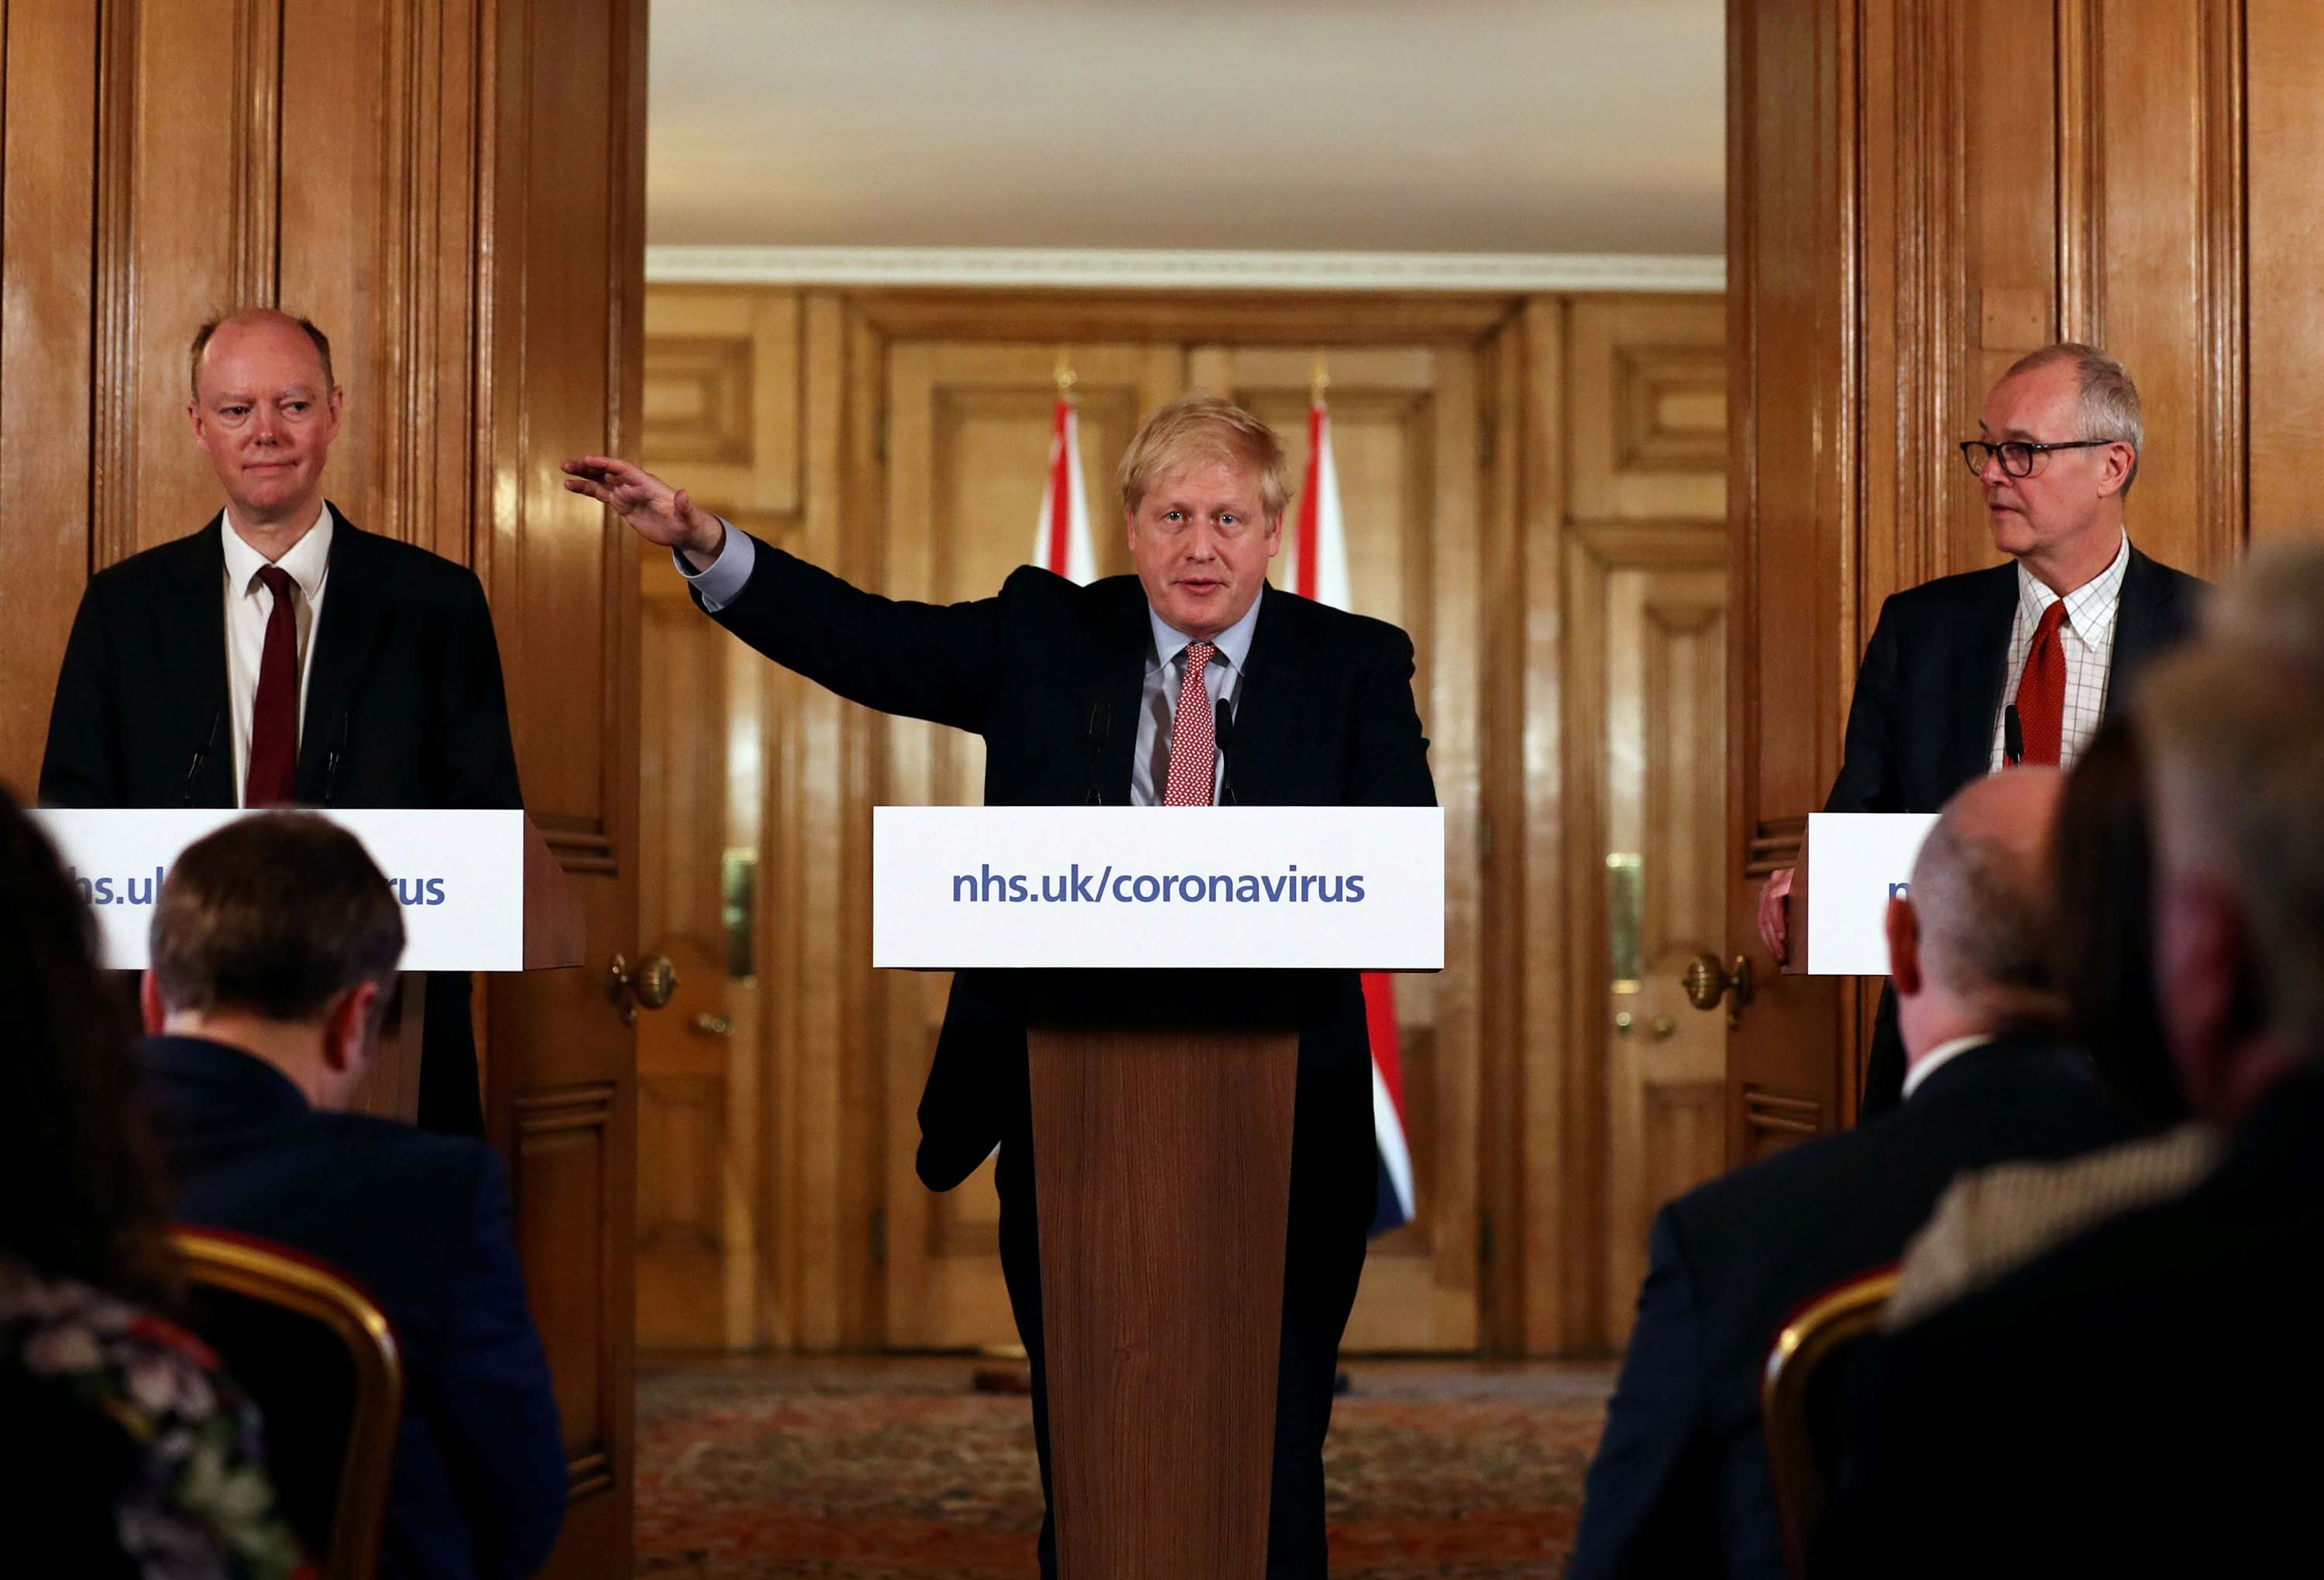 British Prime Minister Boris Johnson, center, speaks alongside Chief Medical Officer for England, Chris Whitty, left, and Government Chief Scientific Adviser, Sir Patrick Vallance during a news conference addressing the government's response to the novel coronavirus outbreak in London on March 12.